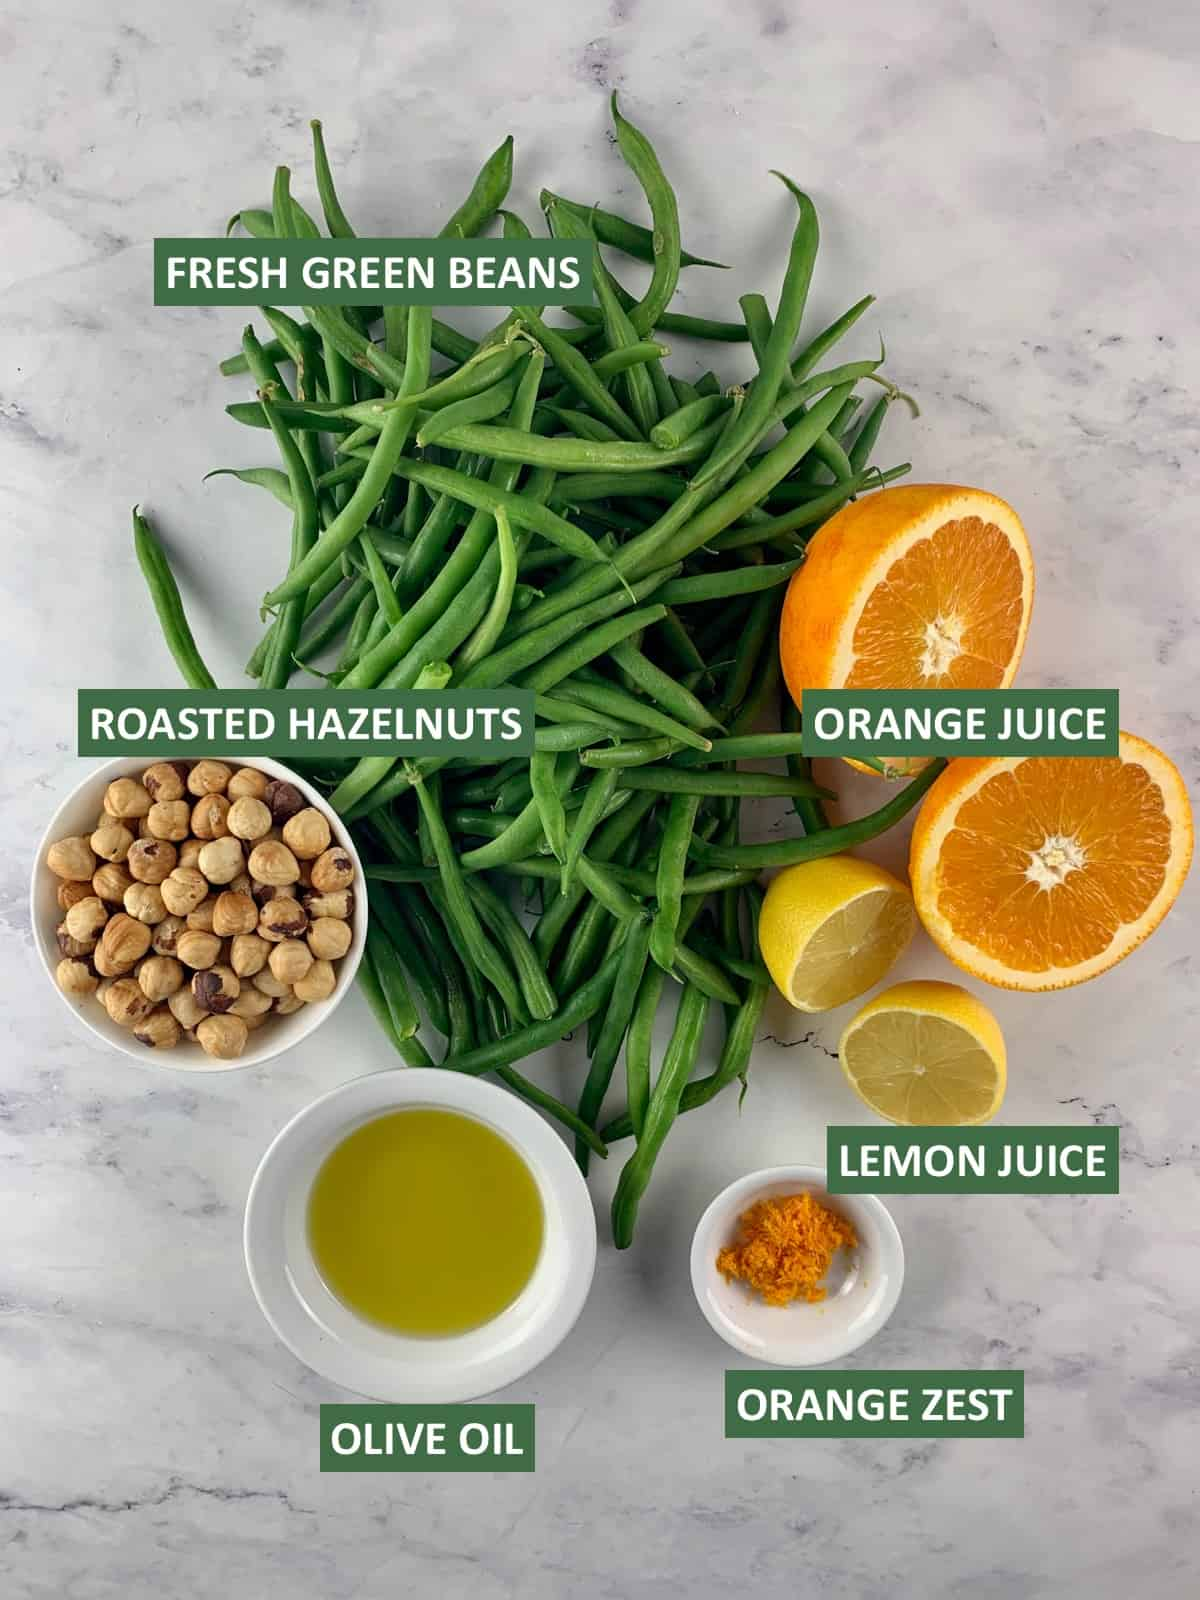 GREEN BEAN SALAD INGREDIENTS WITH TEXT